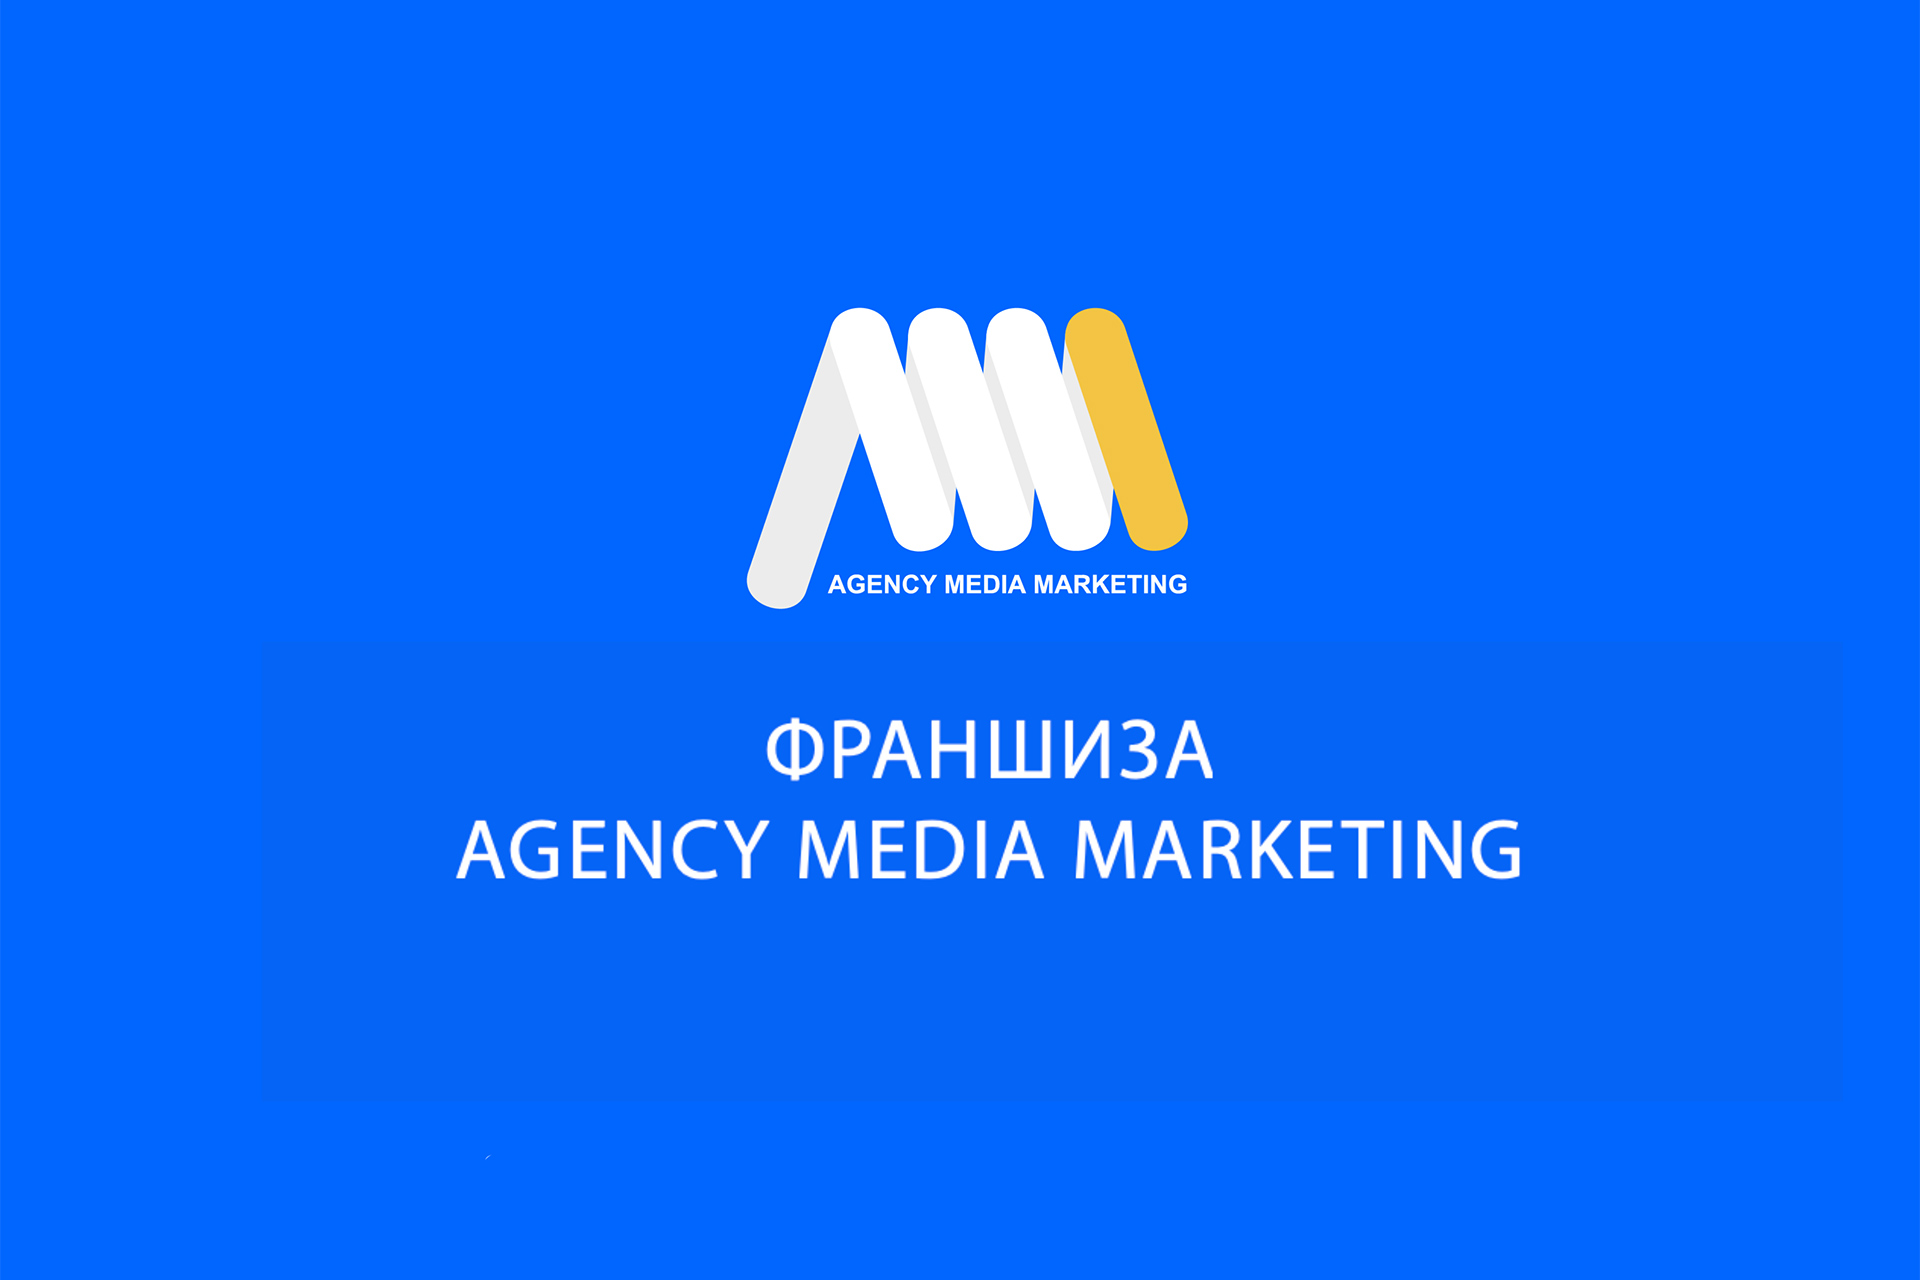 Франшиза SMM агентство Agency Media Marketing - франшиза маркетингового агентства